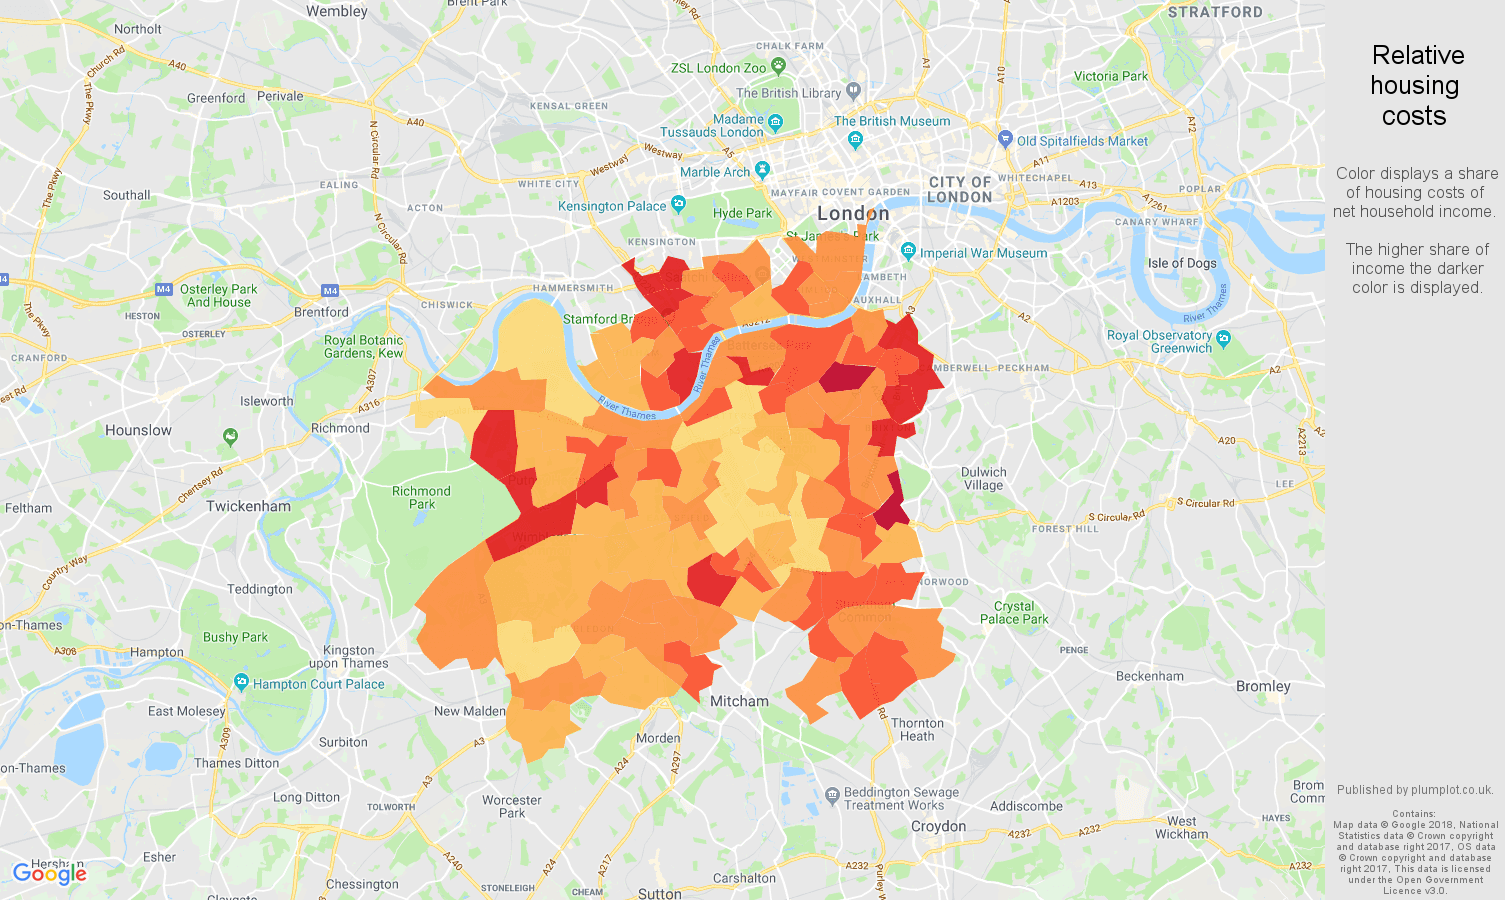 South West London relative housing costs map